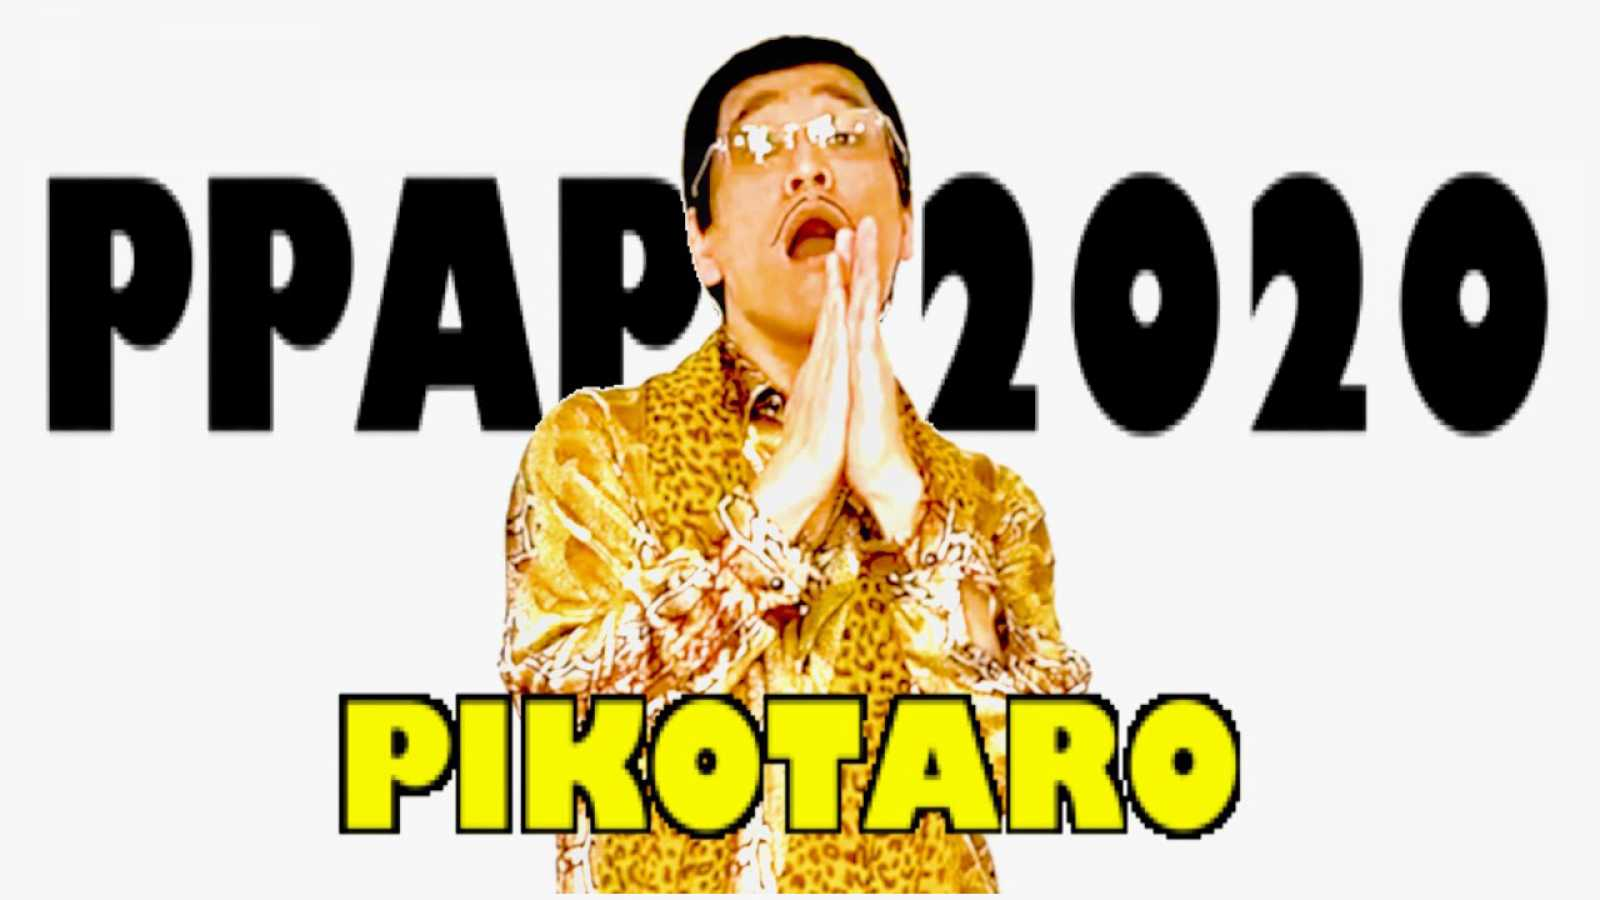 PIKOTARO Reveals New Version of